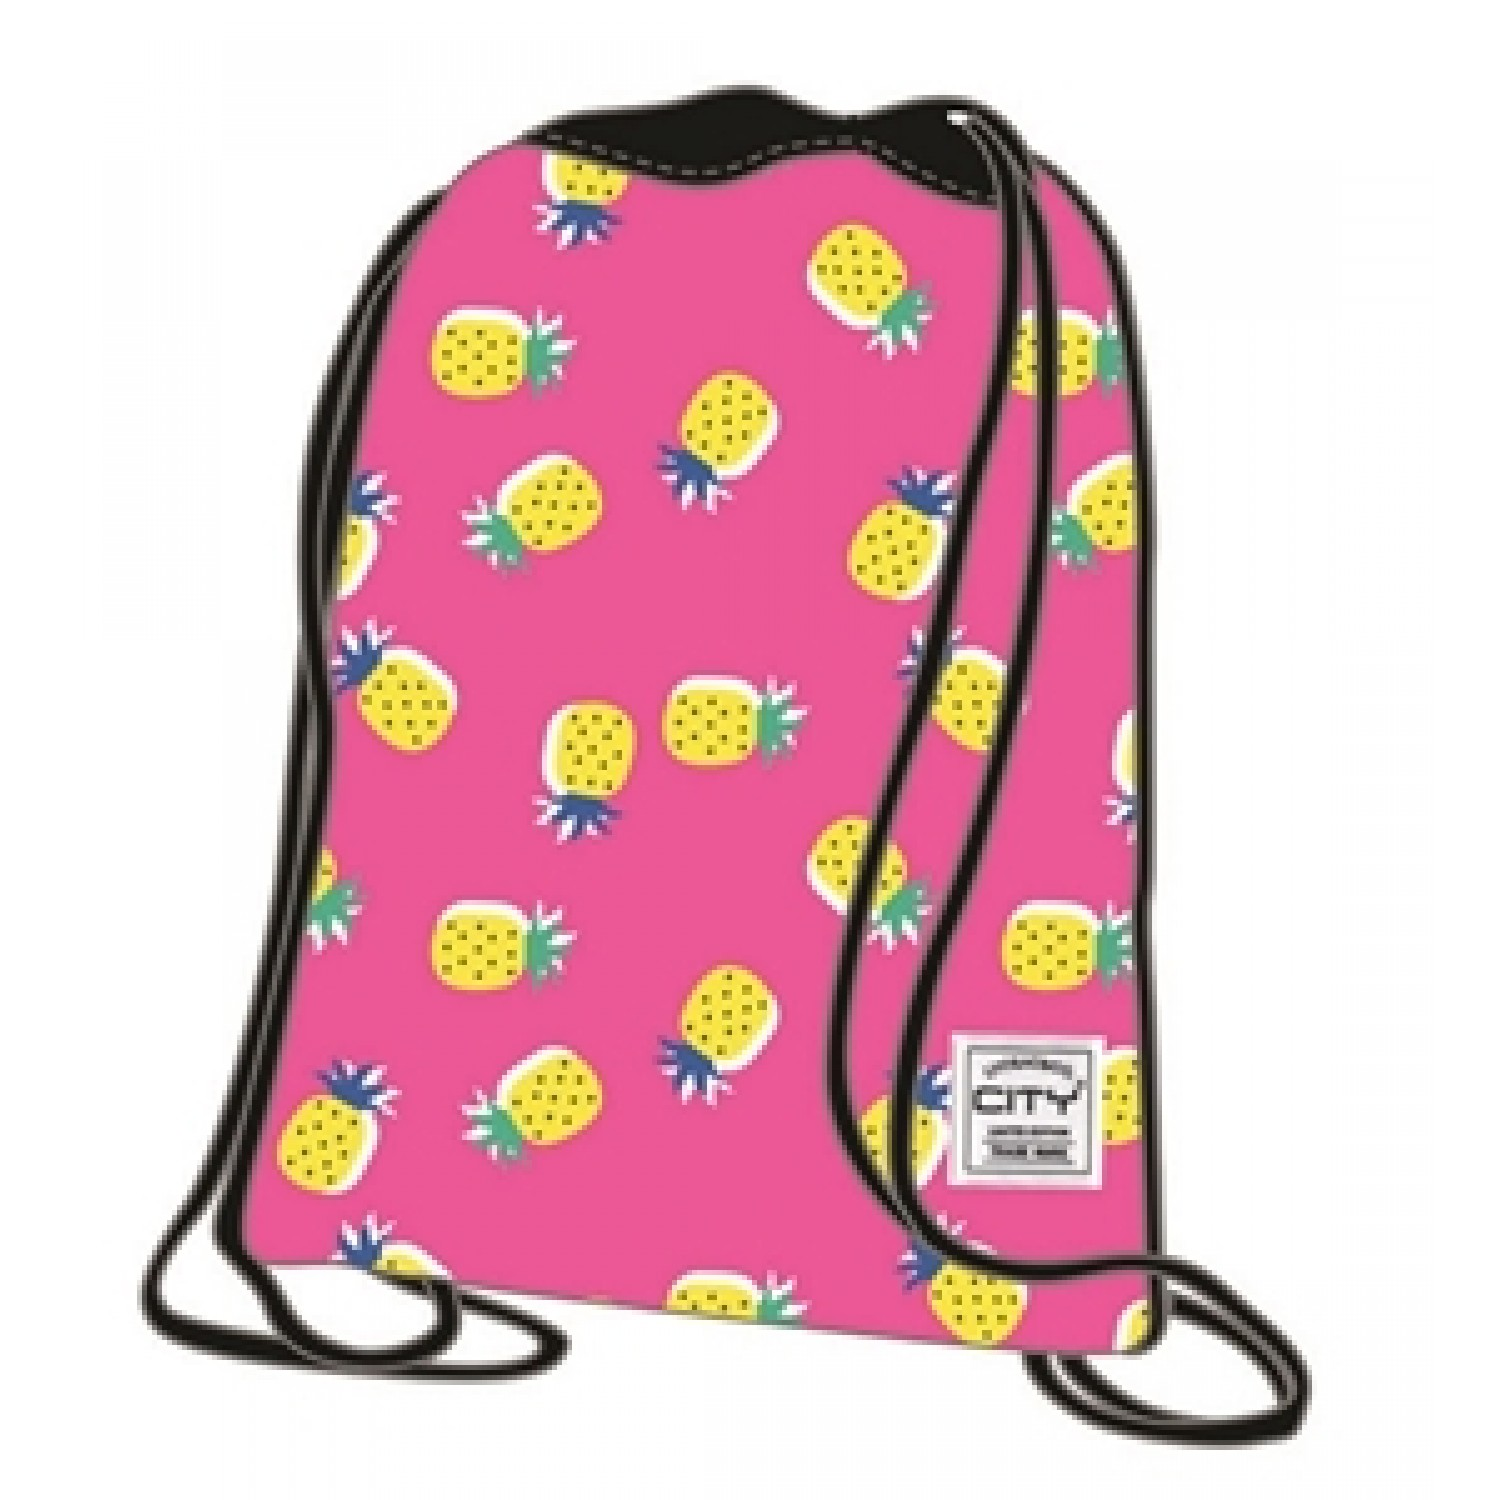 ΤΣΑΝΤΑ CITY DRAWSTRING 23377 ANANAS